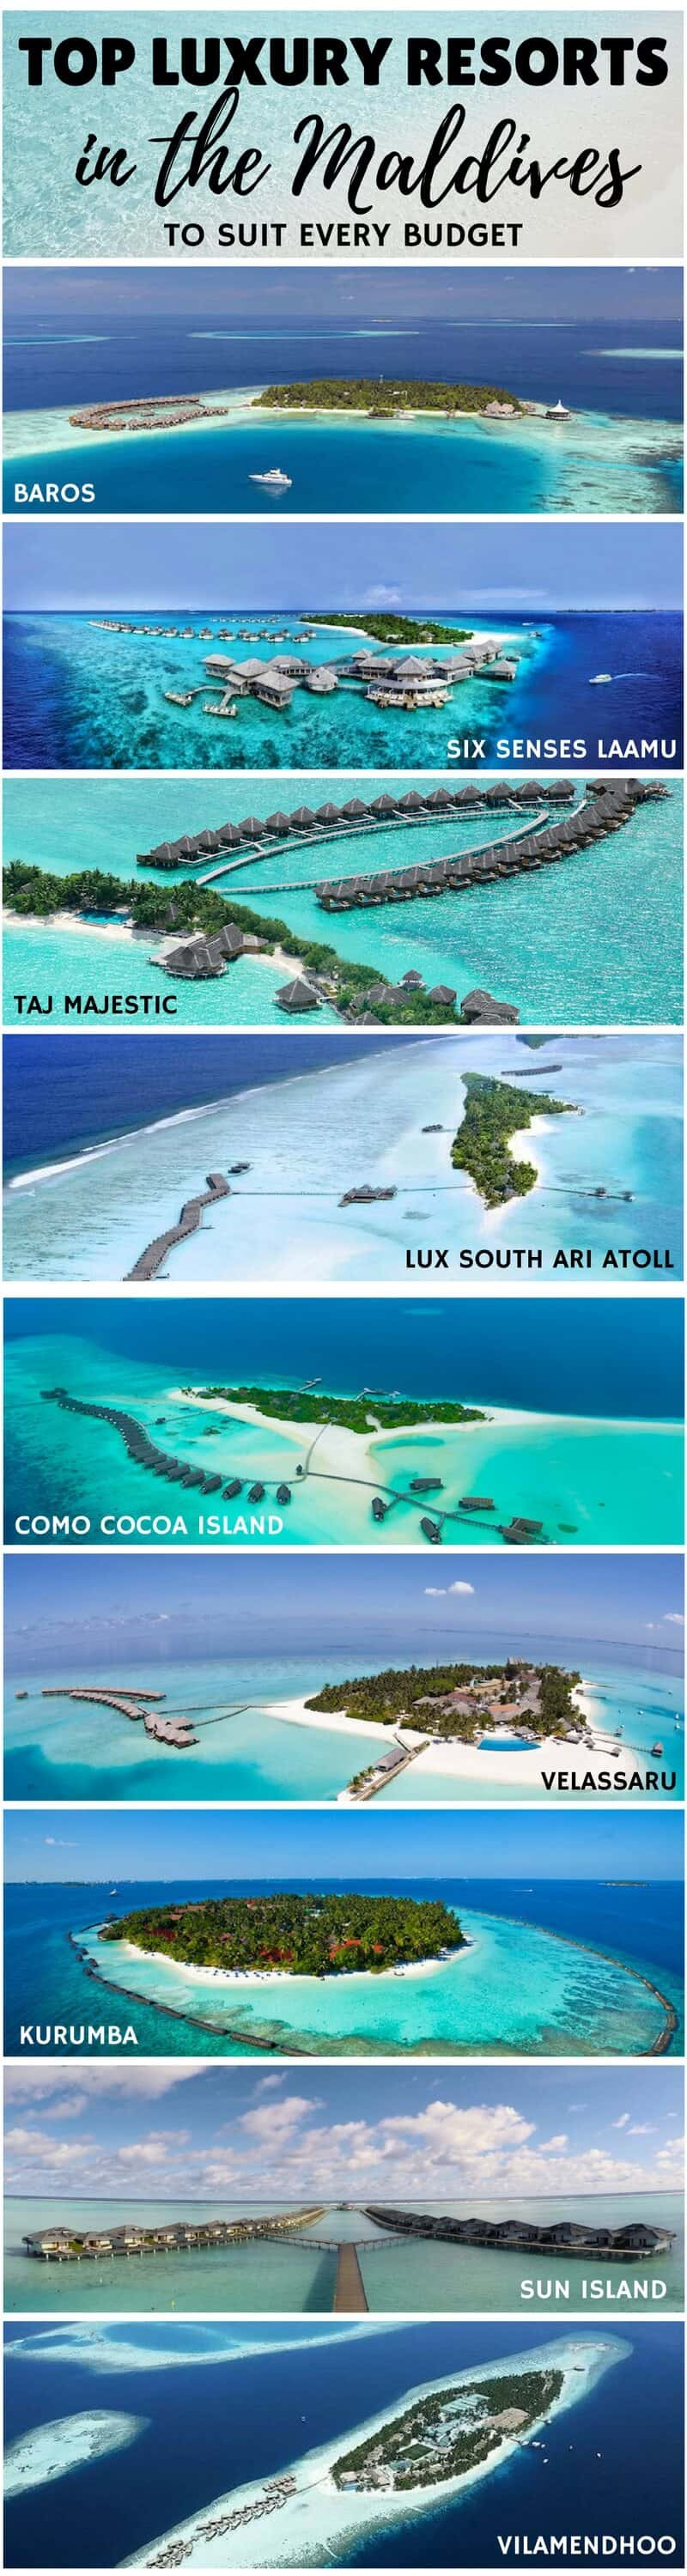 Top Luxury Resorts in the Maldives